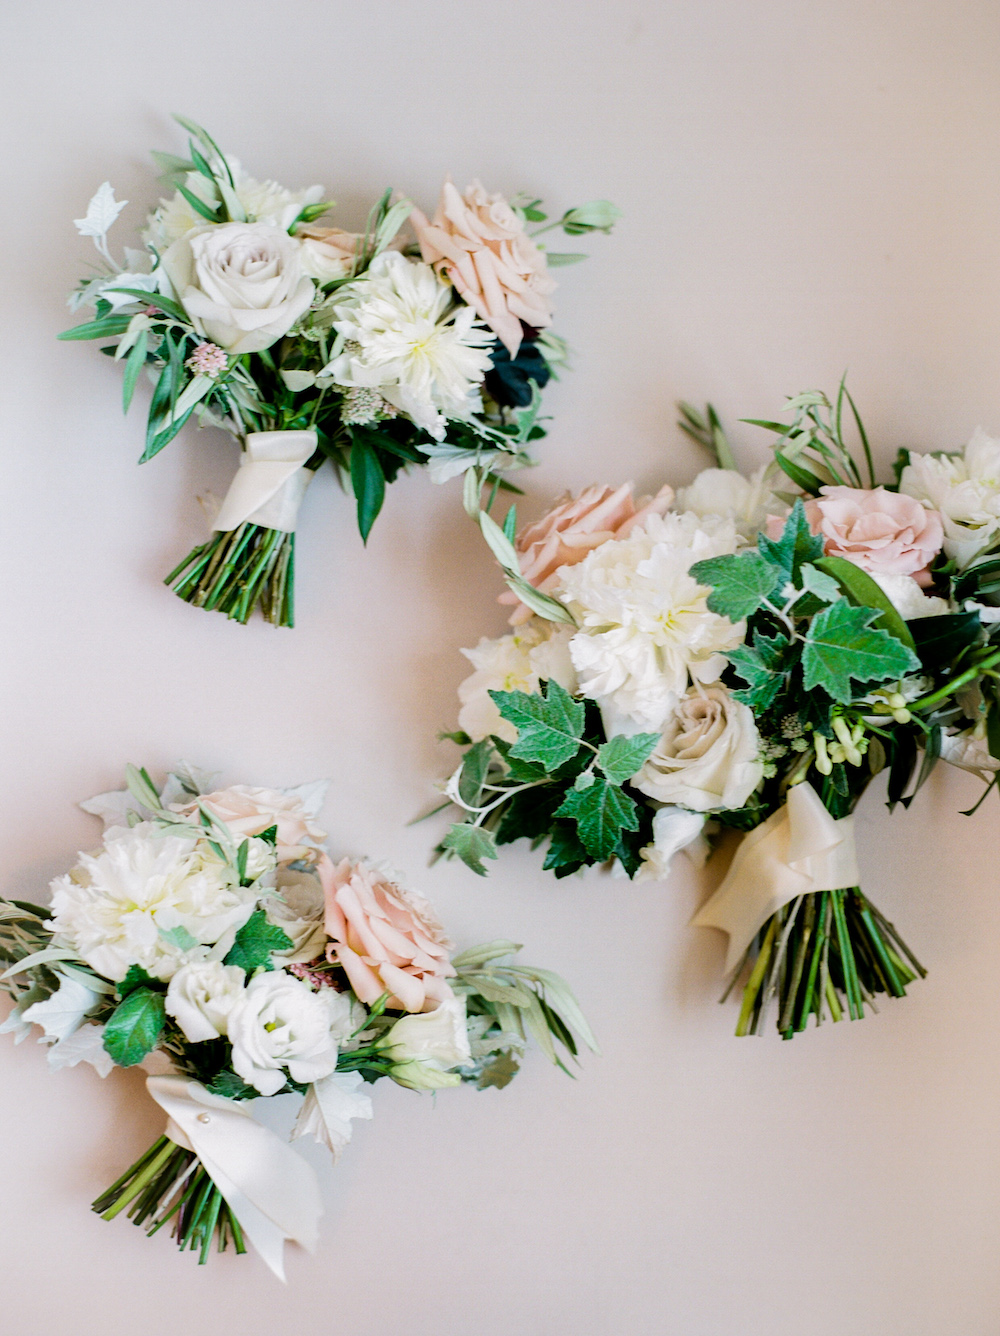 Blush and White Bridal Bouquets - Stone House Creative